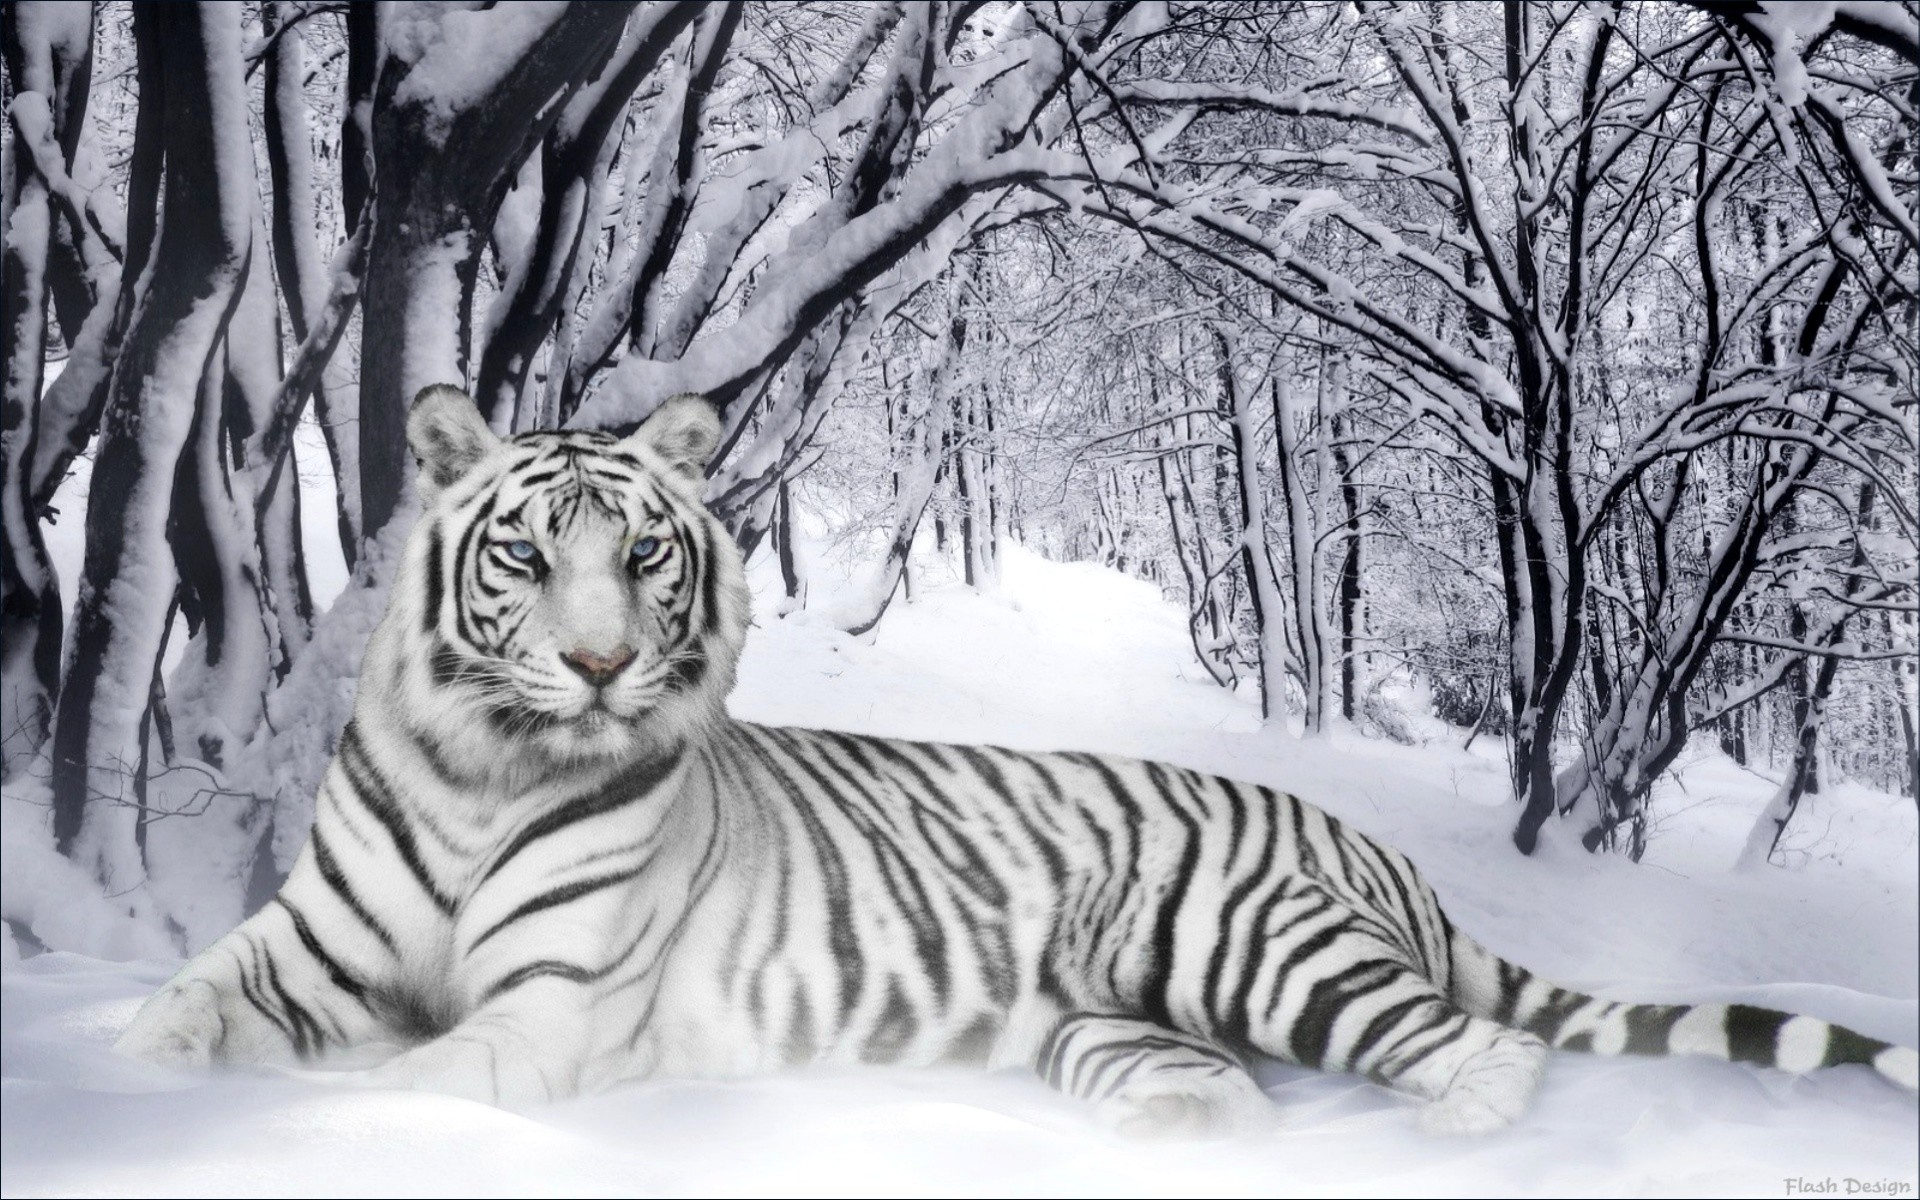 White Tiger HD Wallpapers Backgrounds Wallpaper   HD Wallpapers   Pinterest    Hd wallpaper, Wallpaper and Wallpaper backgrounds